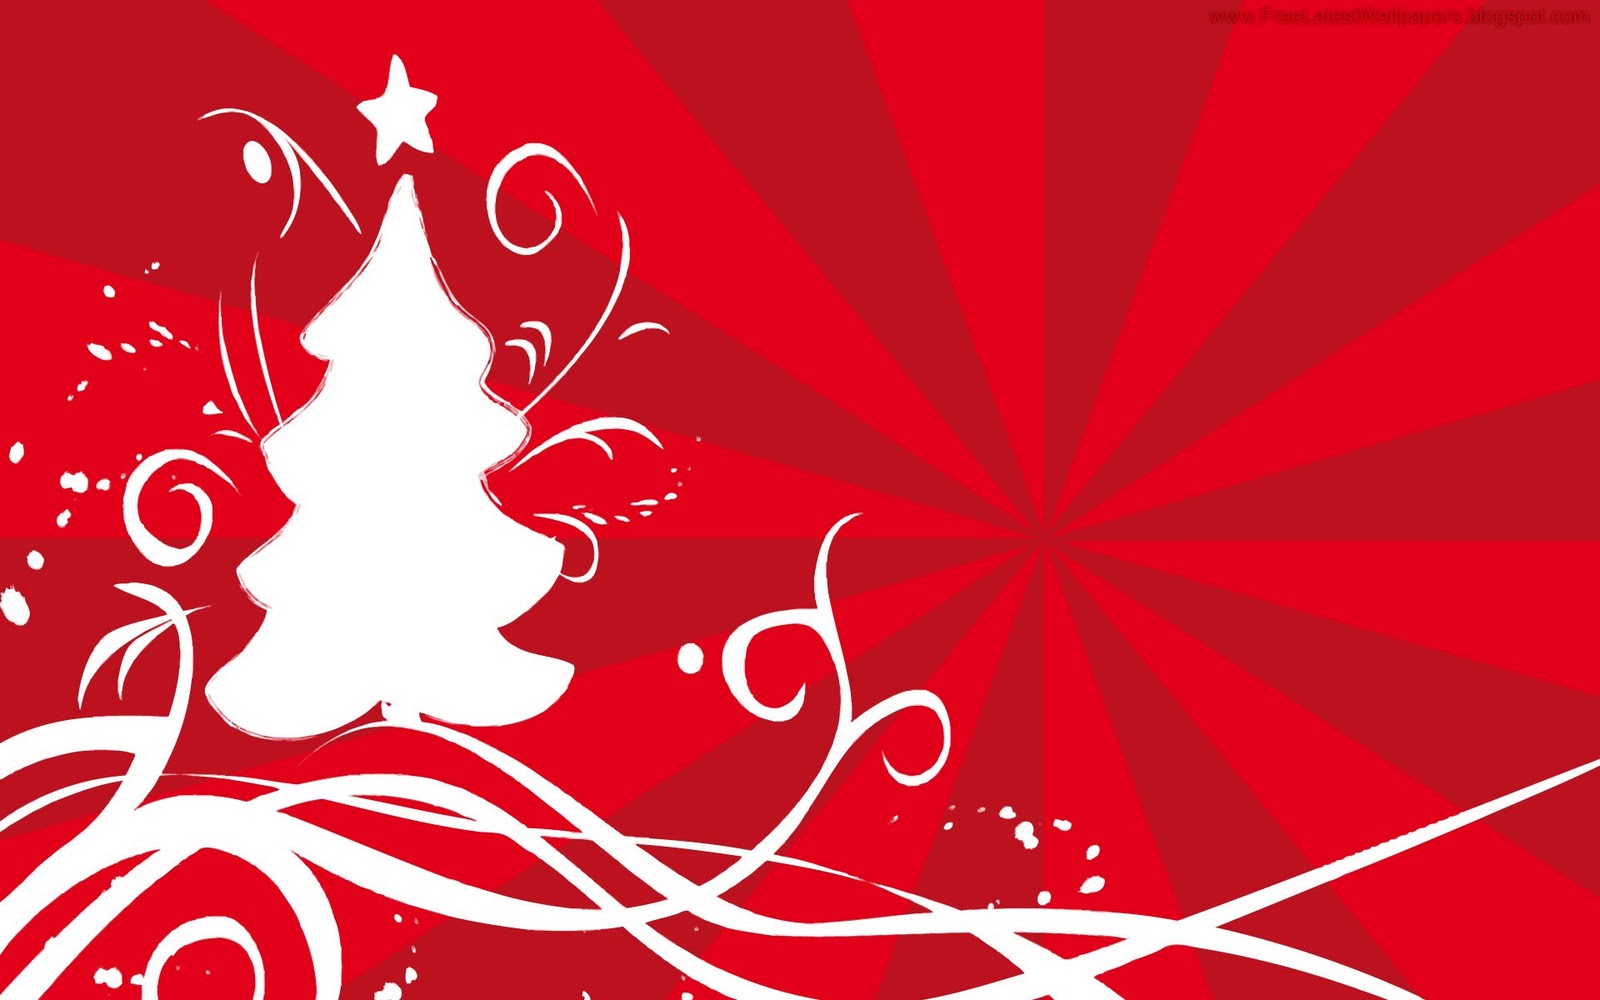 Nature Images Hd 3d Wallpapers Ilona Wallpapers Coca Cola Christmas Tree Wallpaper